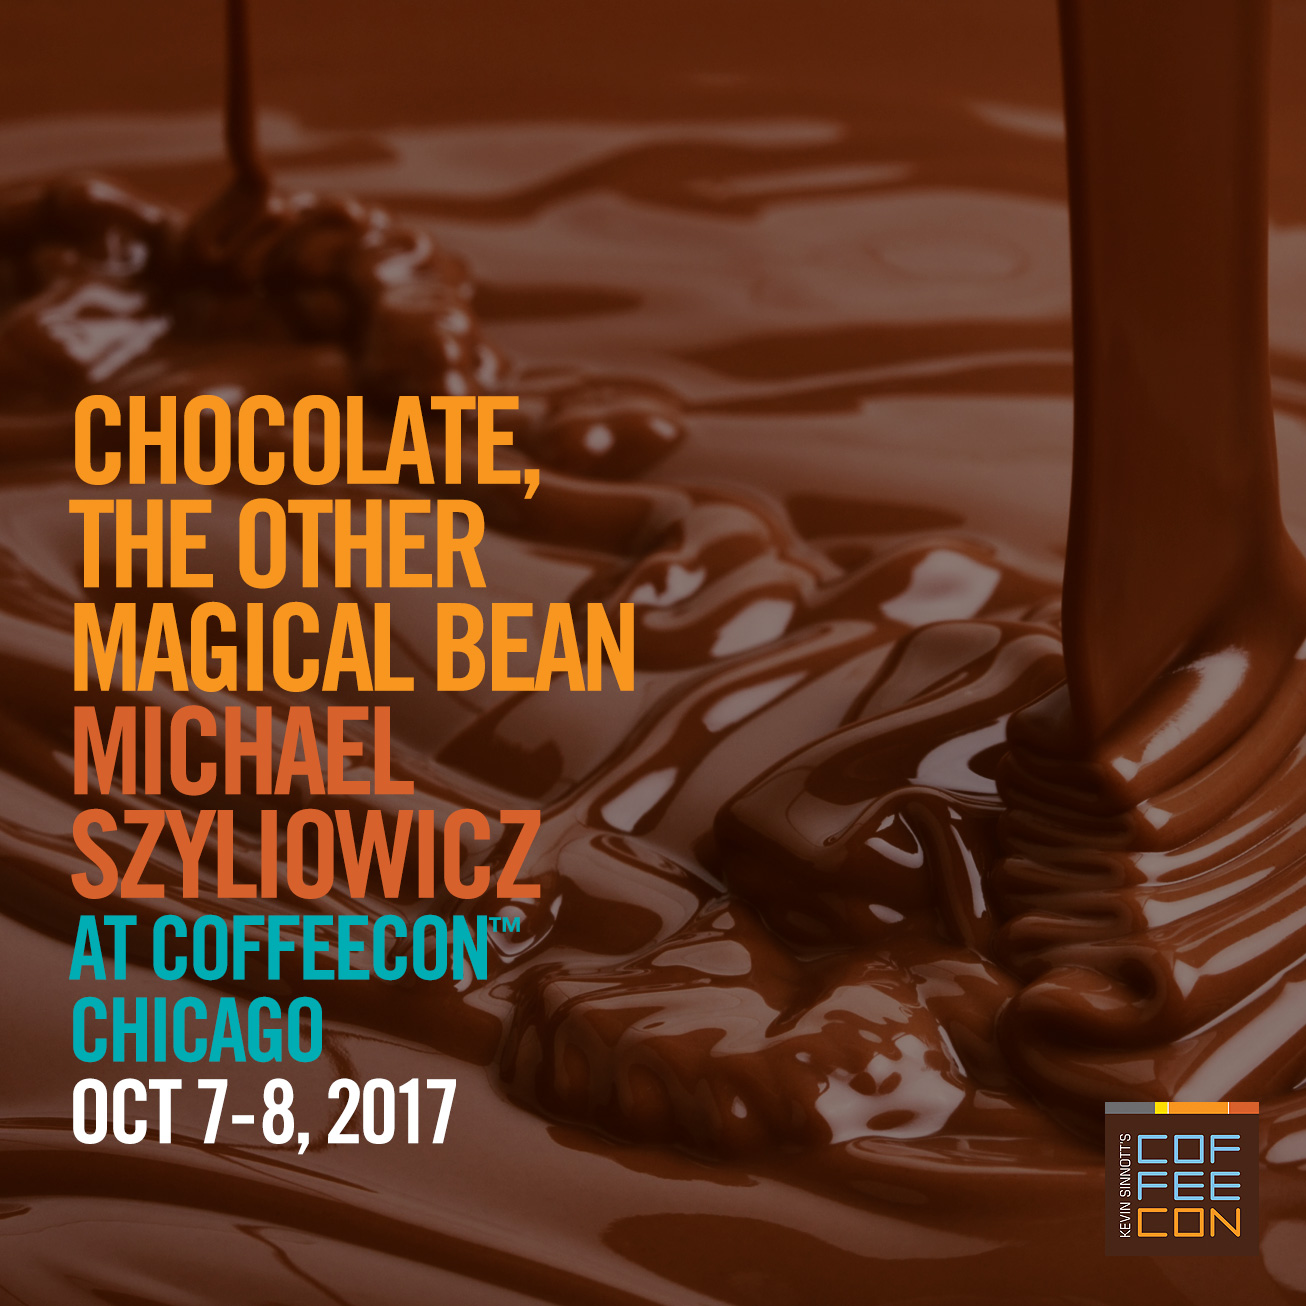 Chocolate, The Other Magical Bean at CoffeeConChi 2017